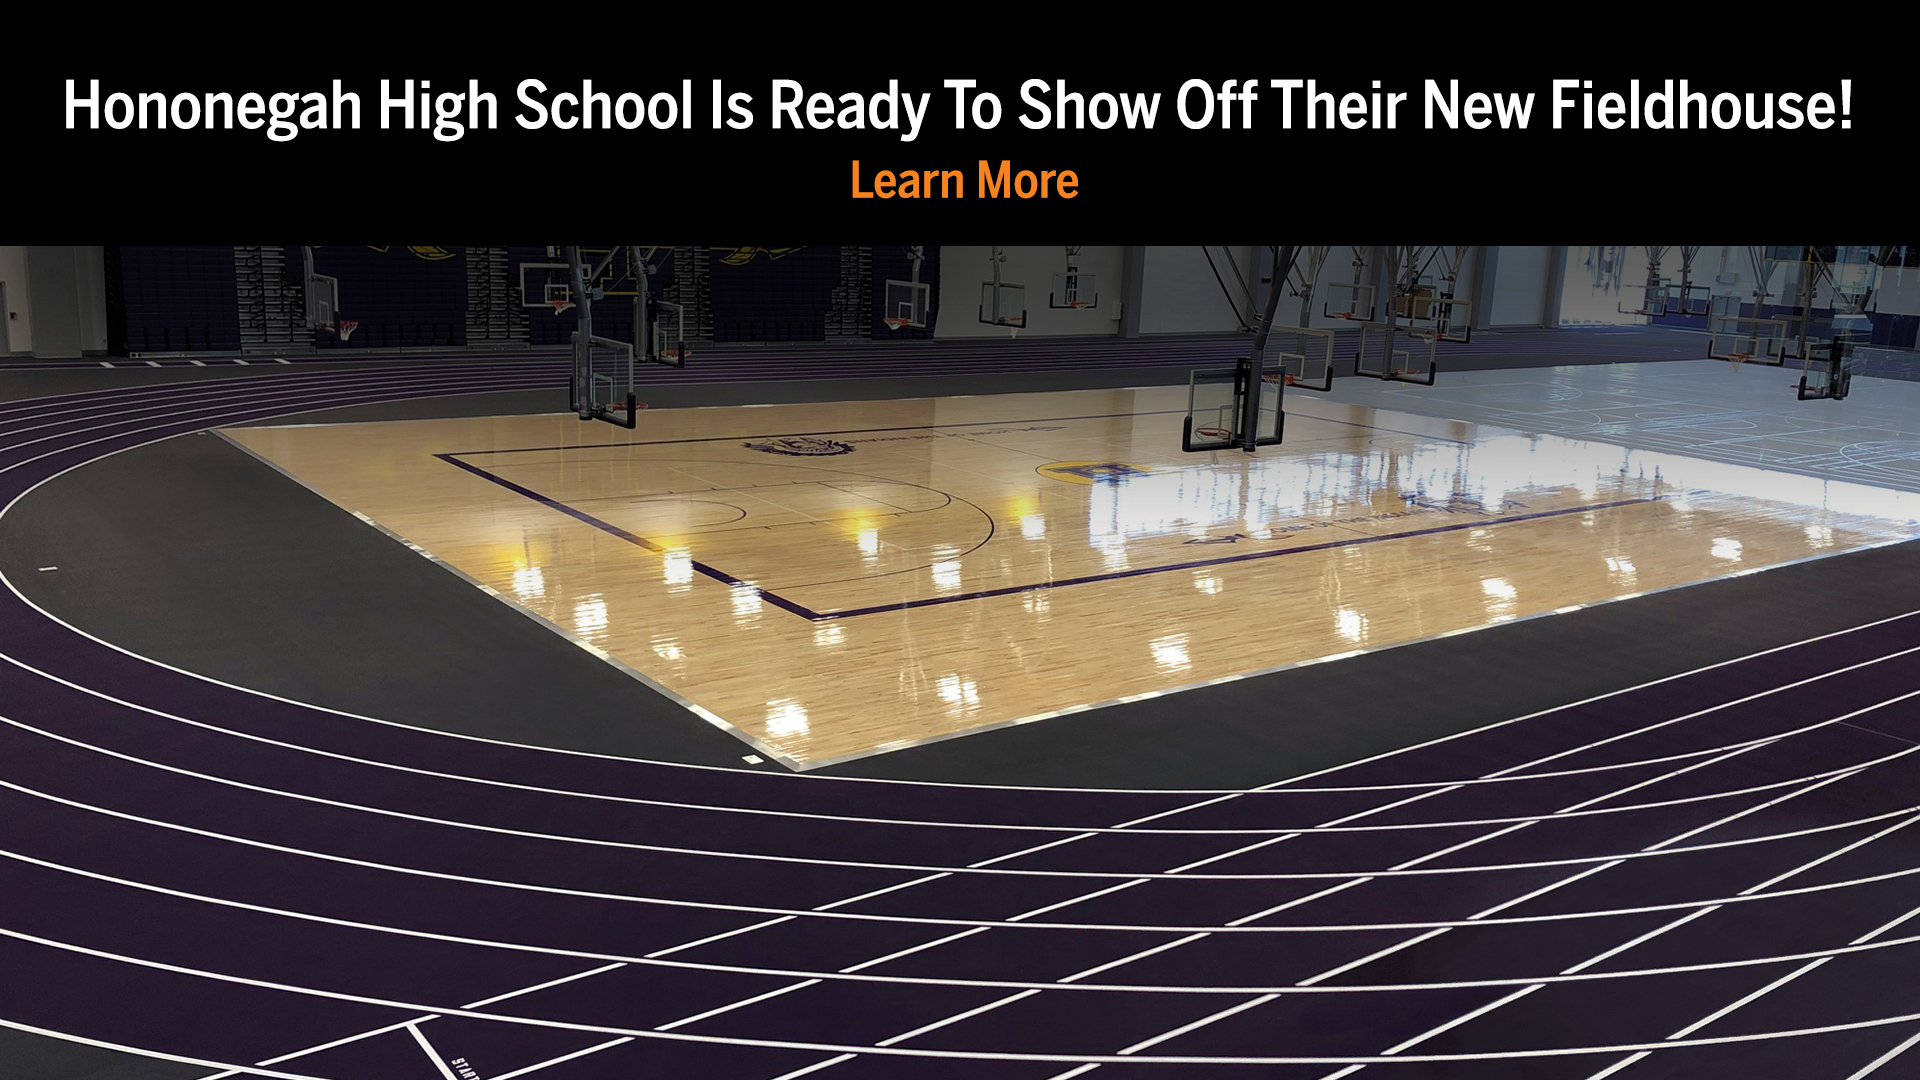 Hononegah High School Is Ready To Show Off Their New Fieldhouse!